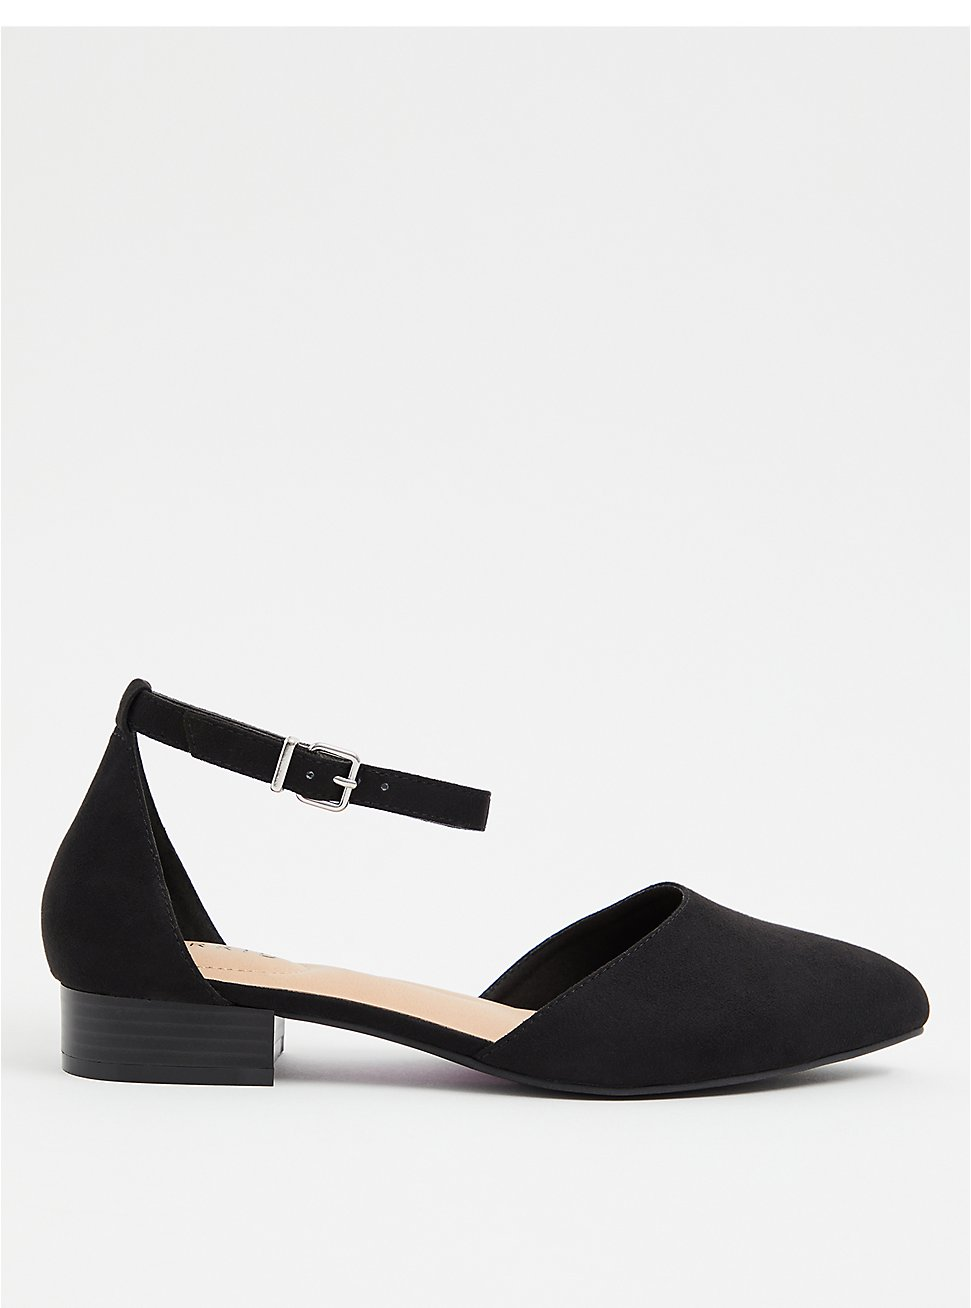 Black Faux Suede Pointed Toe Flat (WW), BLACK, hi-res